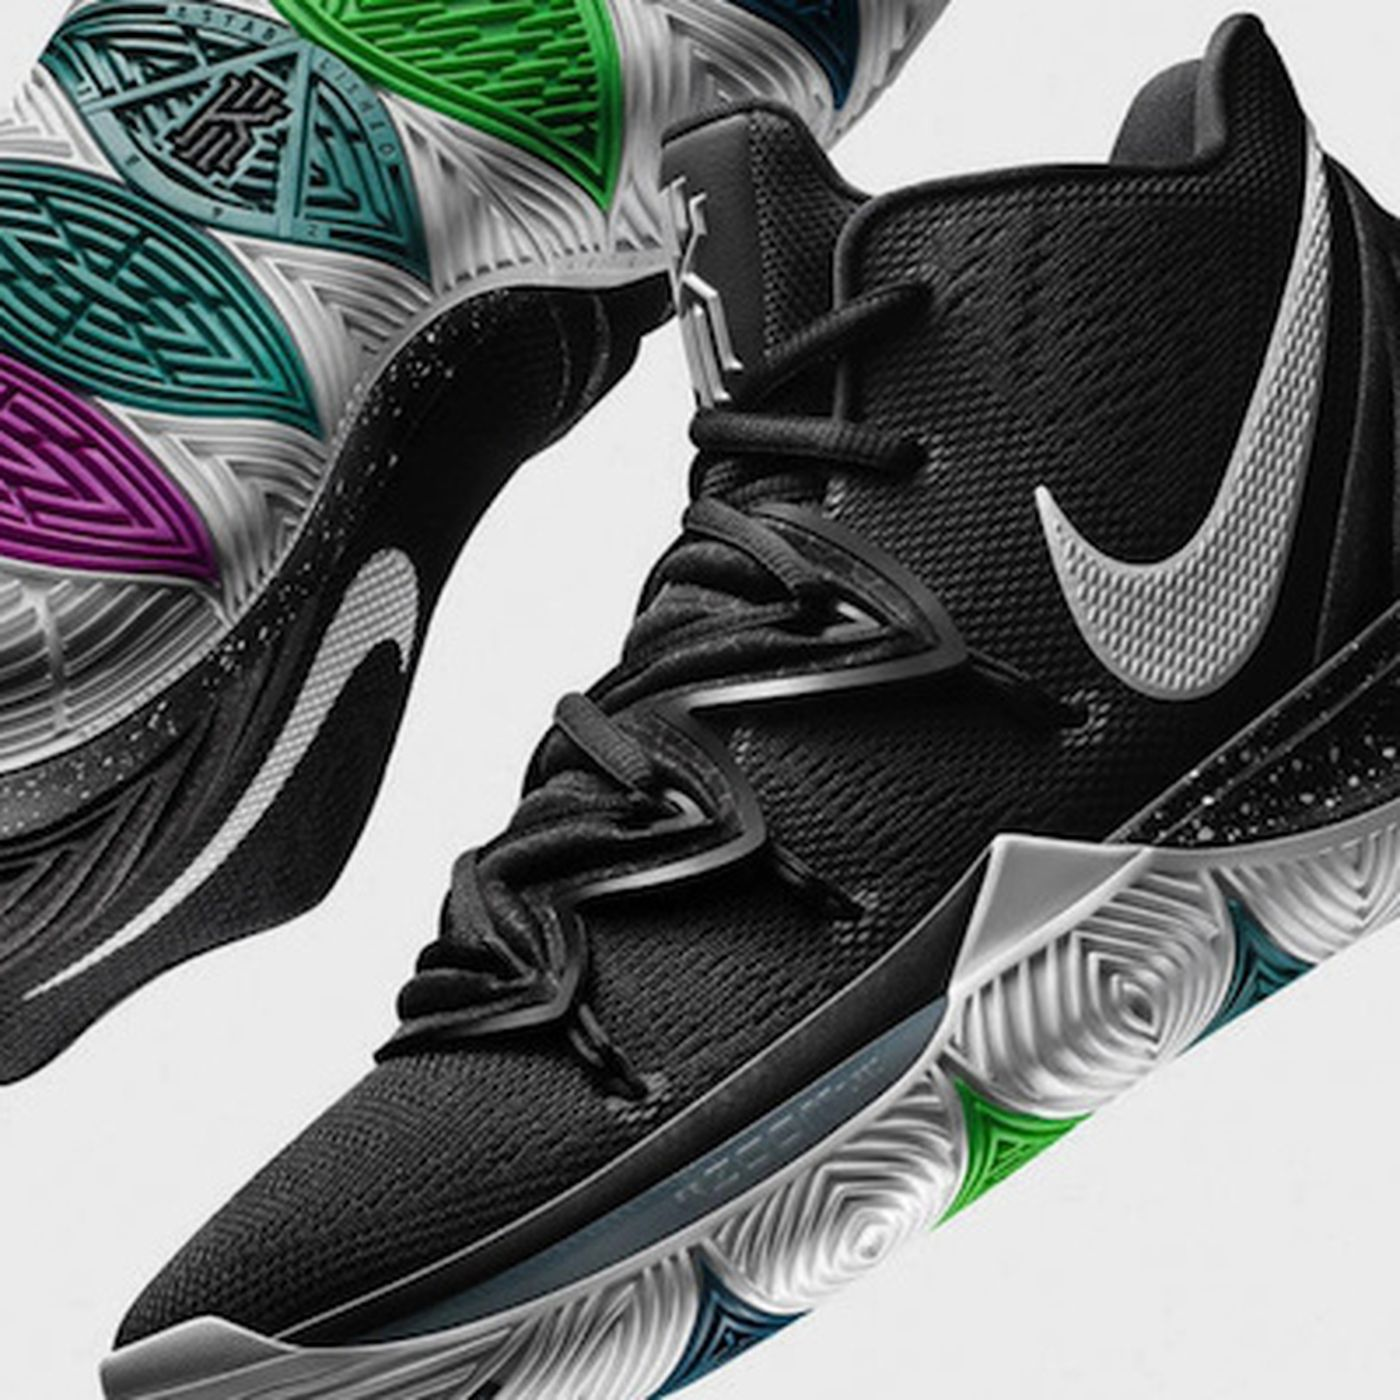 03f9a3631395 Nike announced the latest sneaker in Kyrie Irving s signature line ...